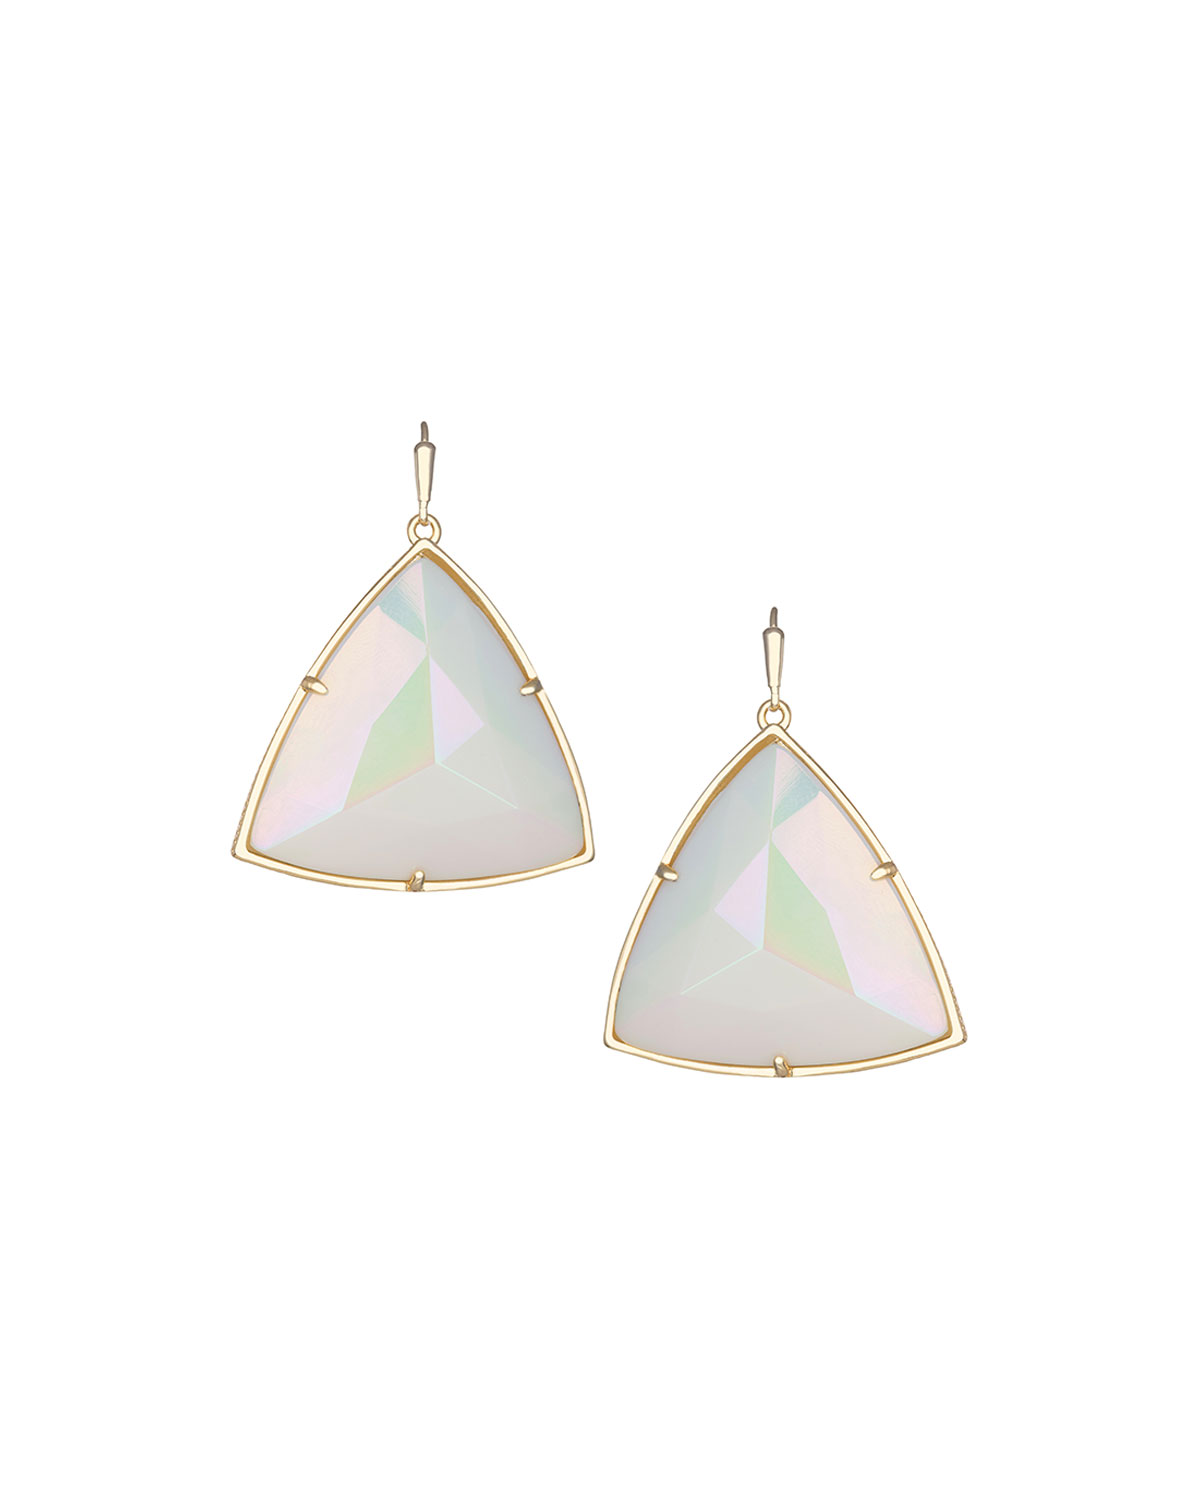 Nikki Iridescent Glass Earrings, IRIDESCENT WHITE - Kendra Scott